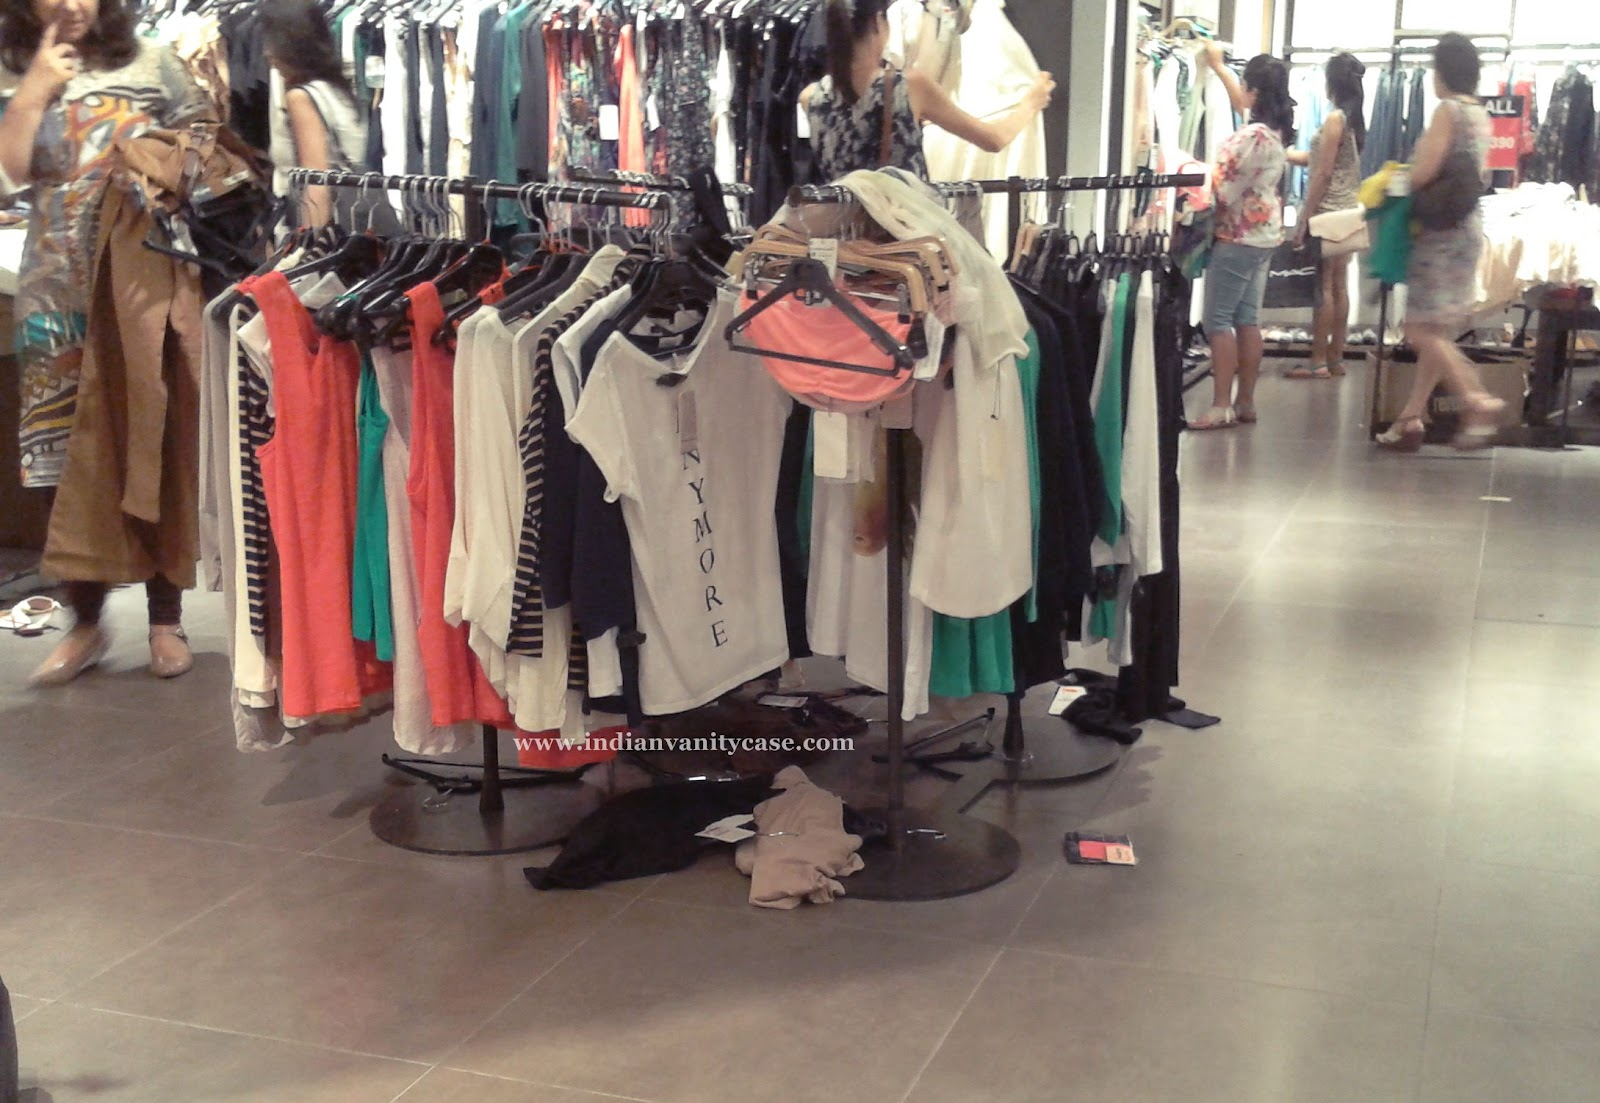 Messy clothing store